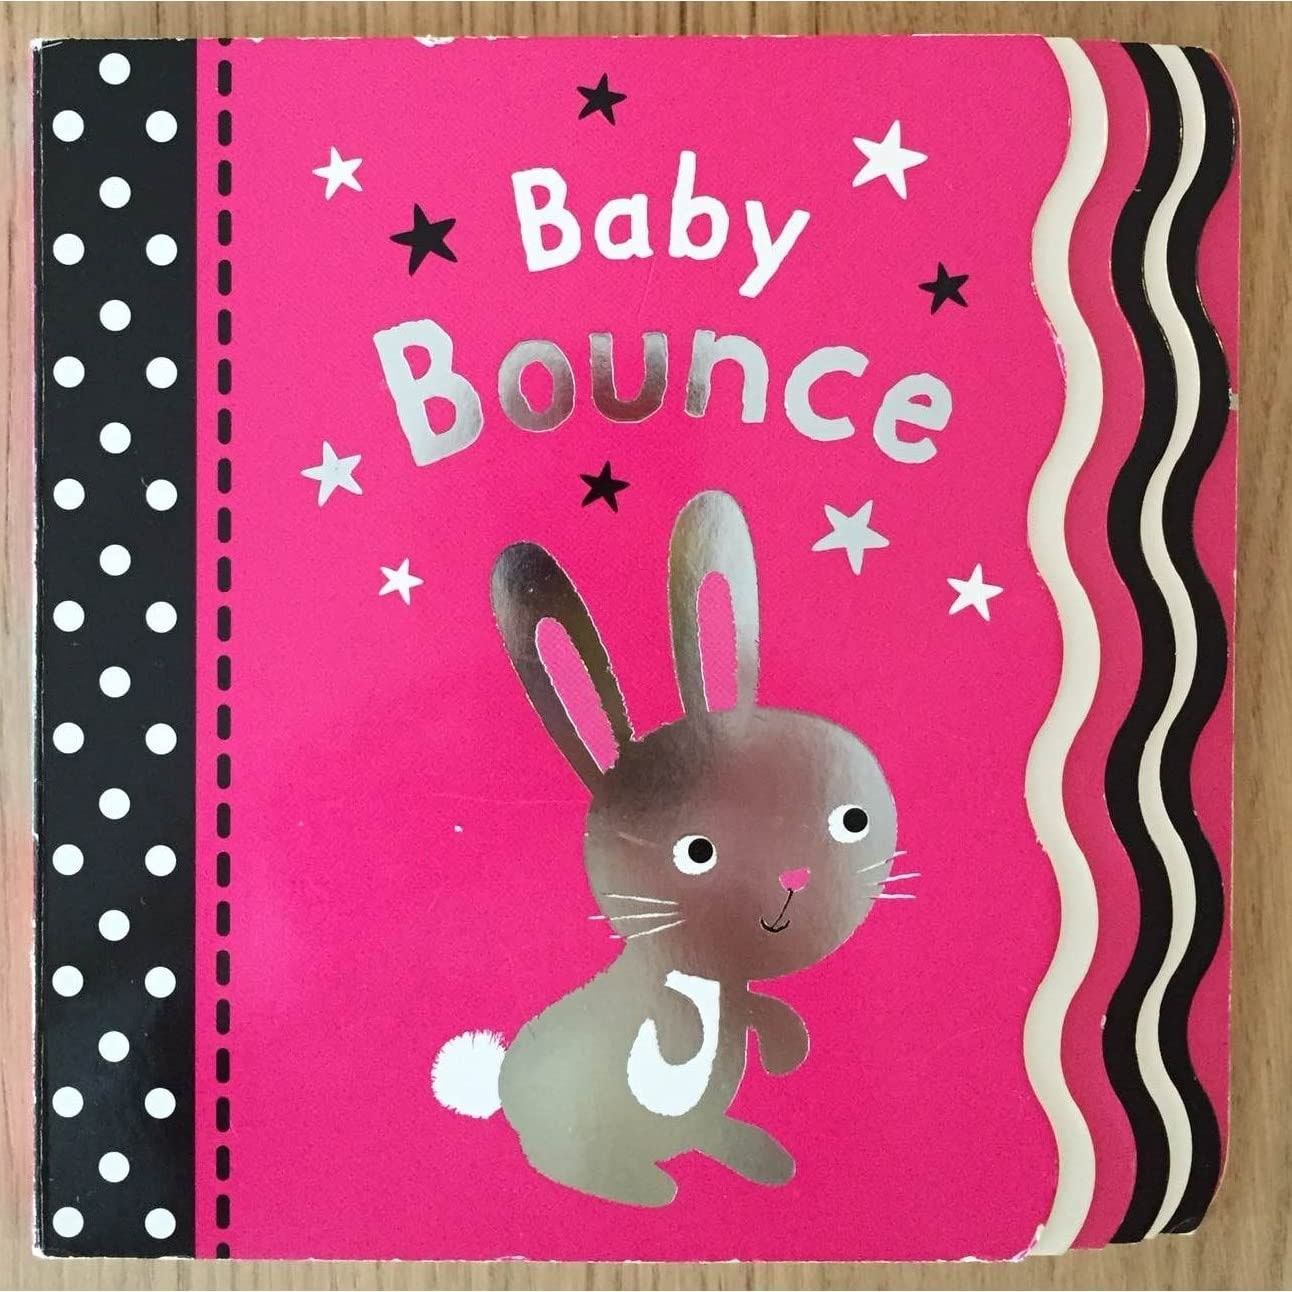 Baby Bounce _ CATERPILLAR BOOKS